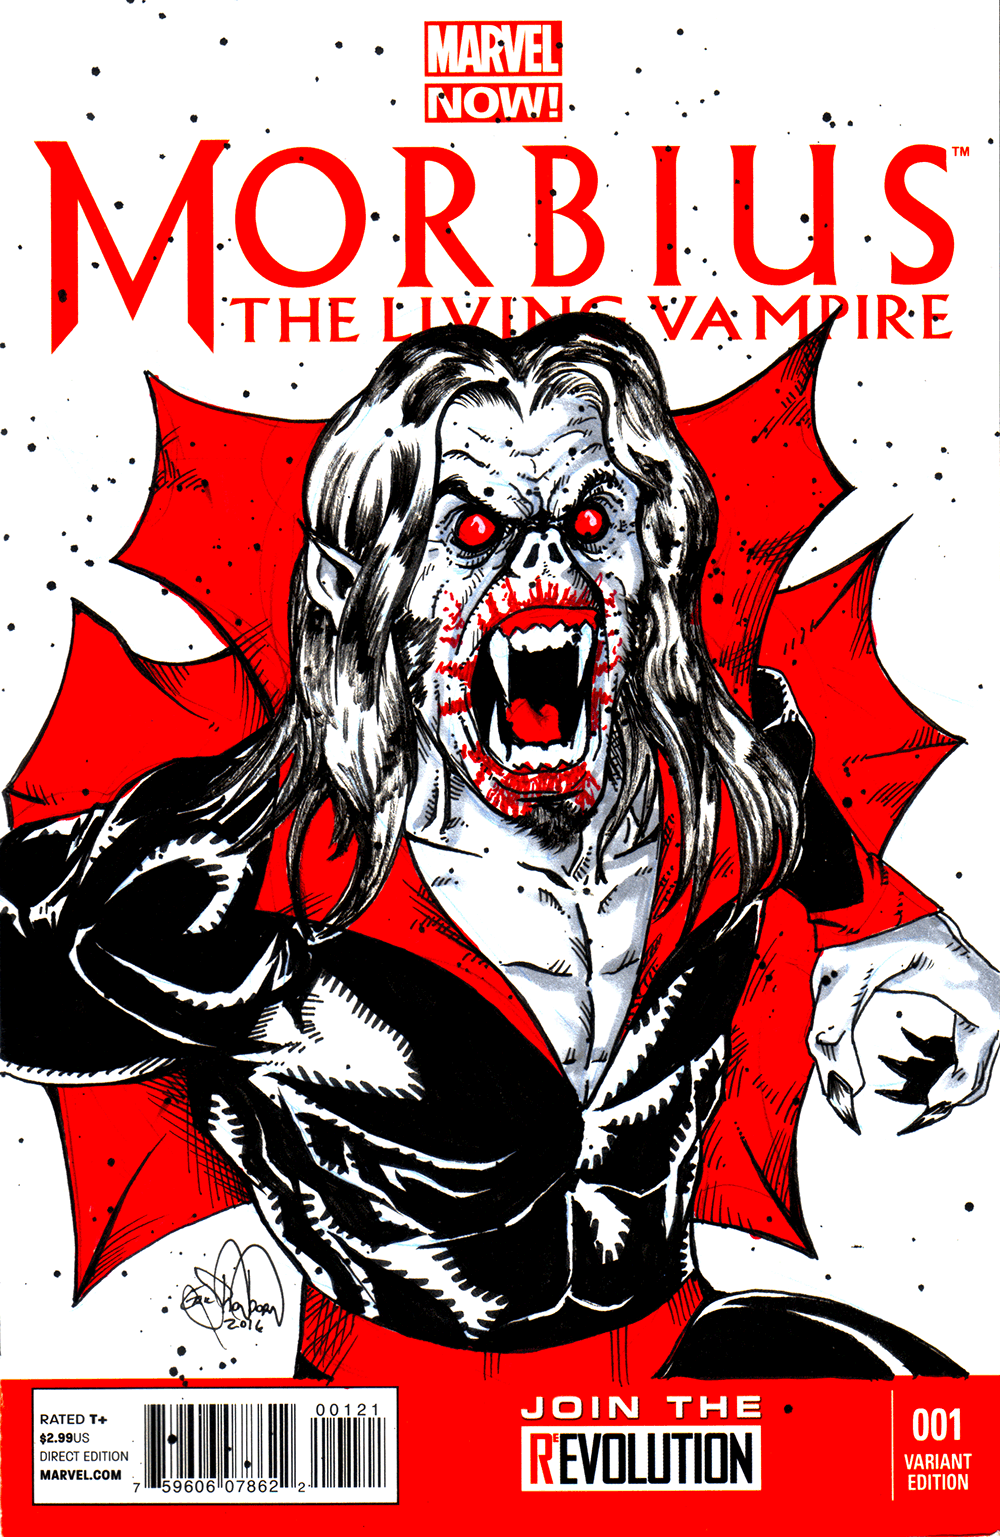 513. Morbius, The Living Vampire